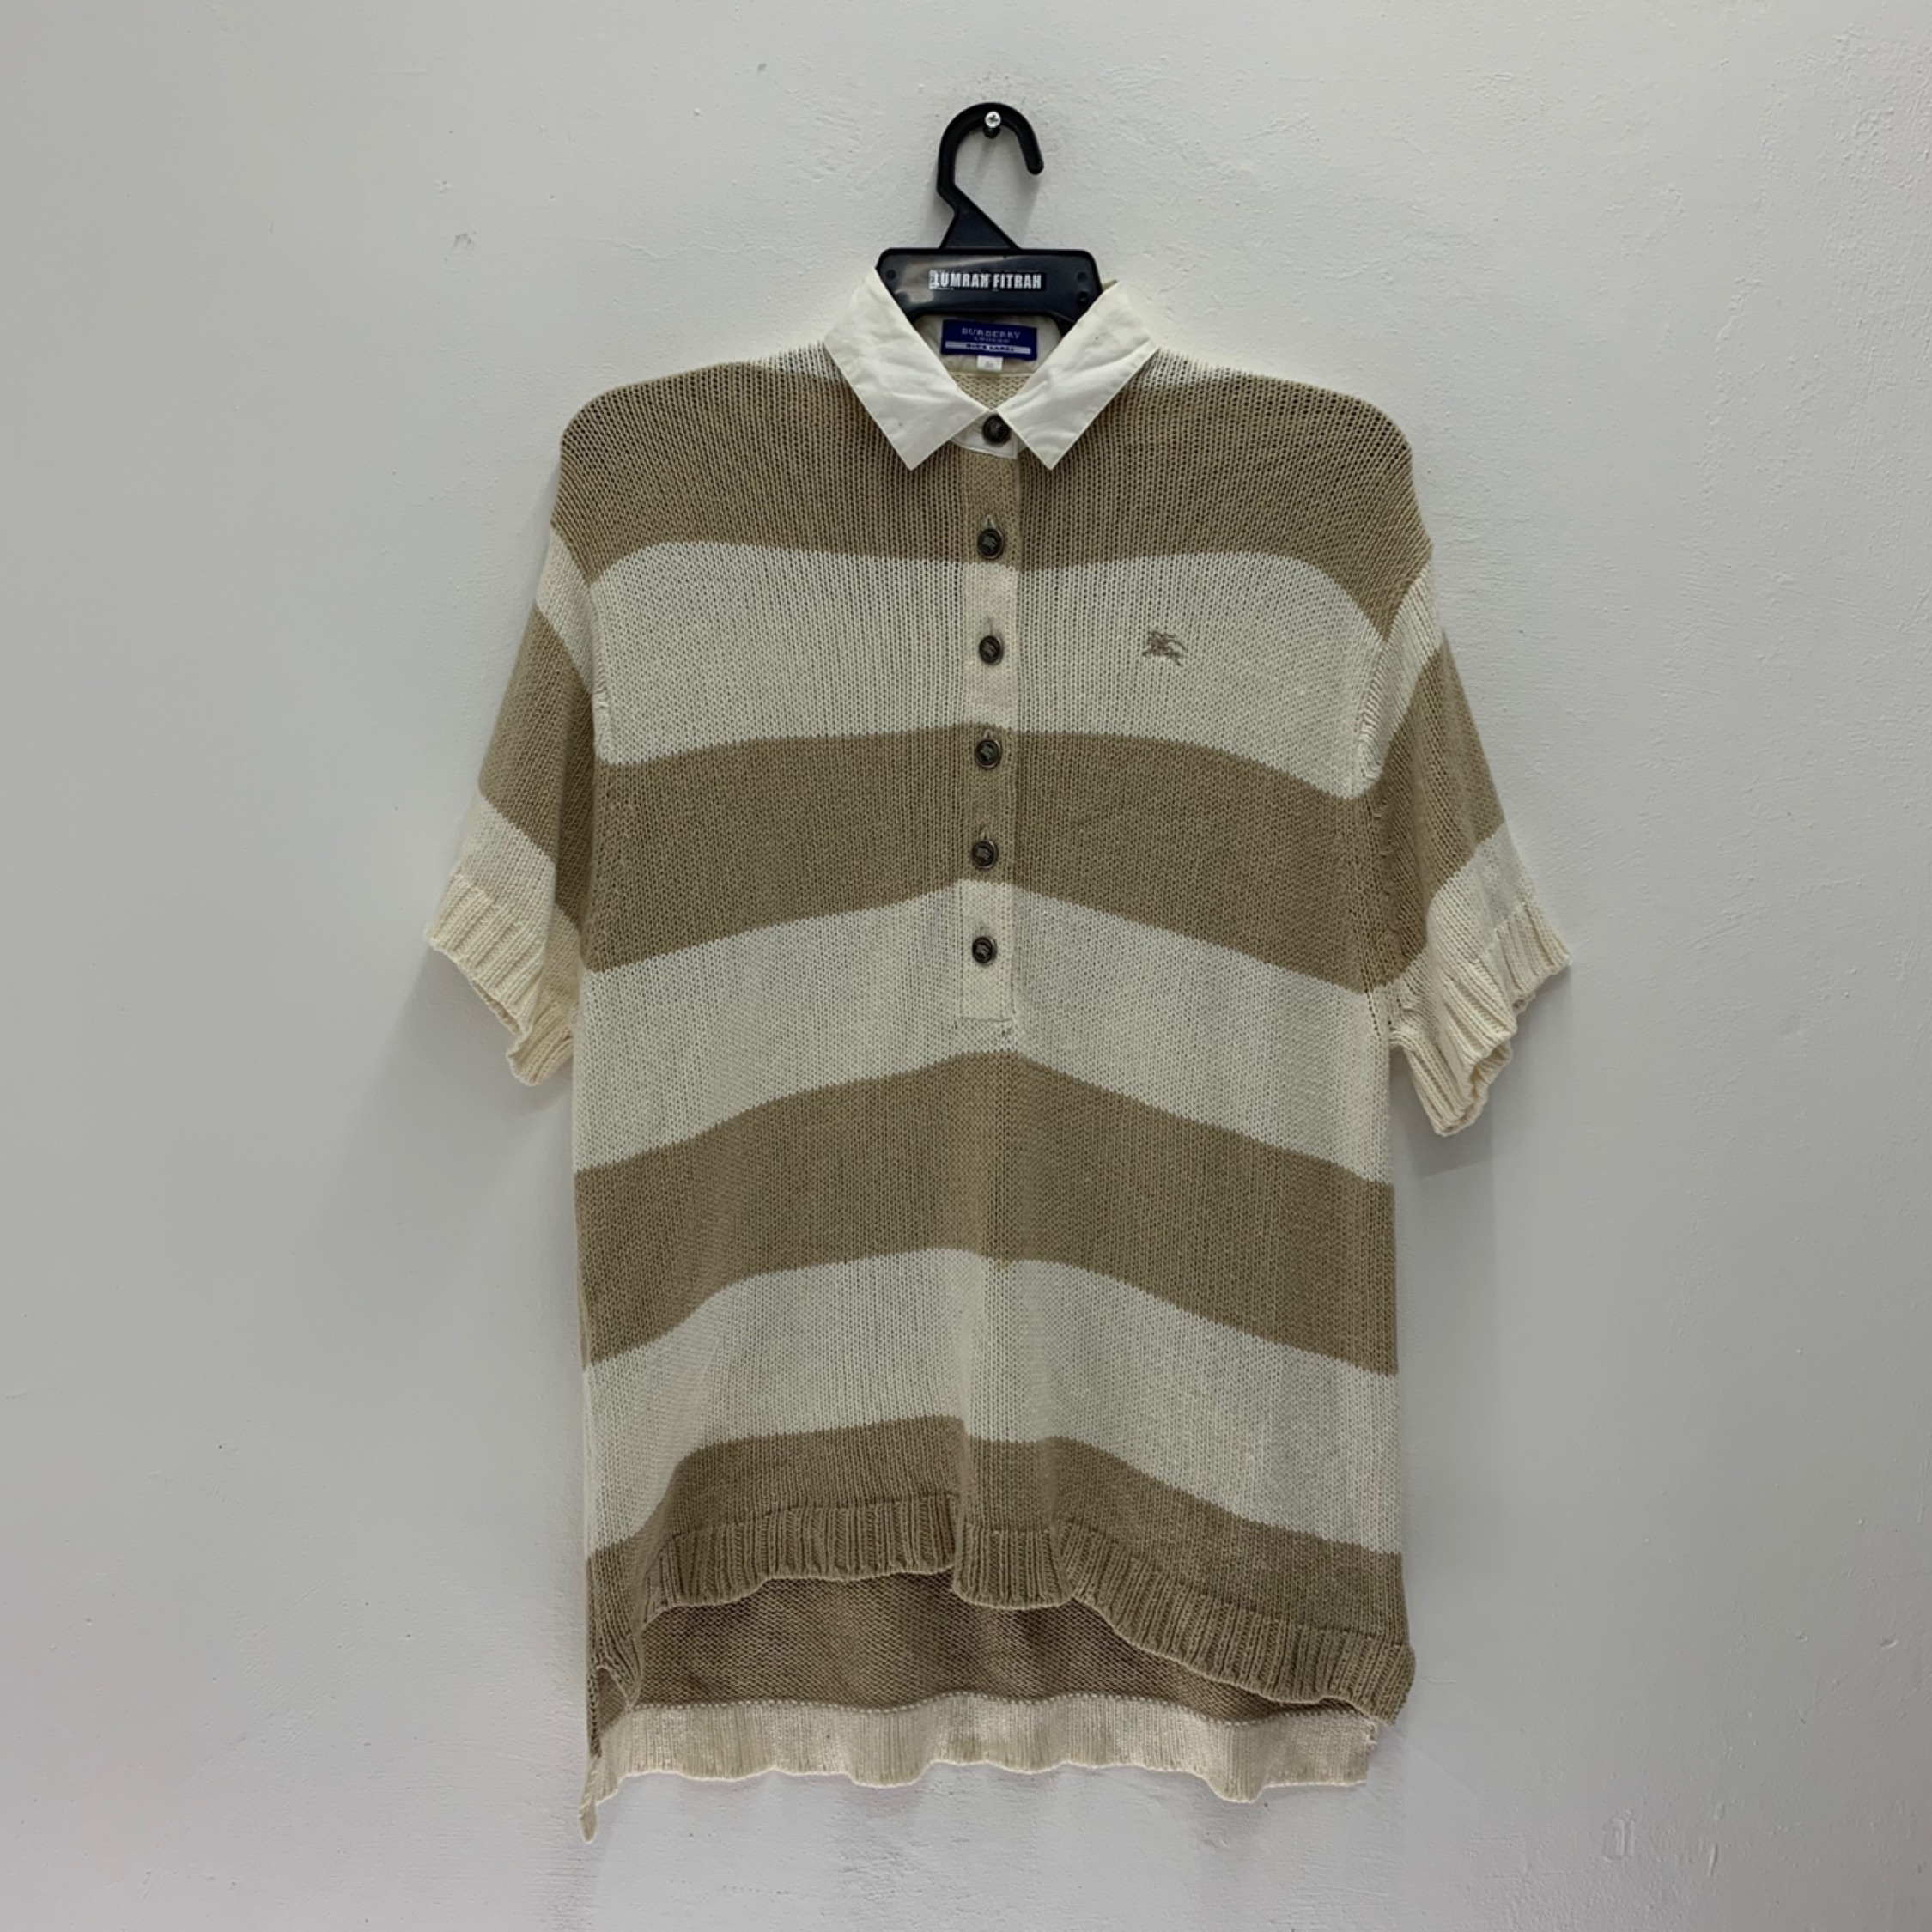 Burberry Blue Label Polo Shirt Knitwear Vintage 90